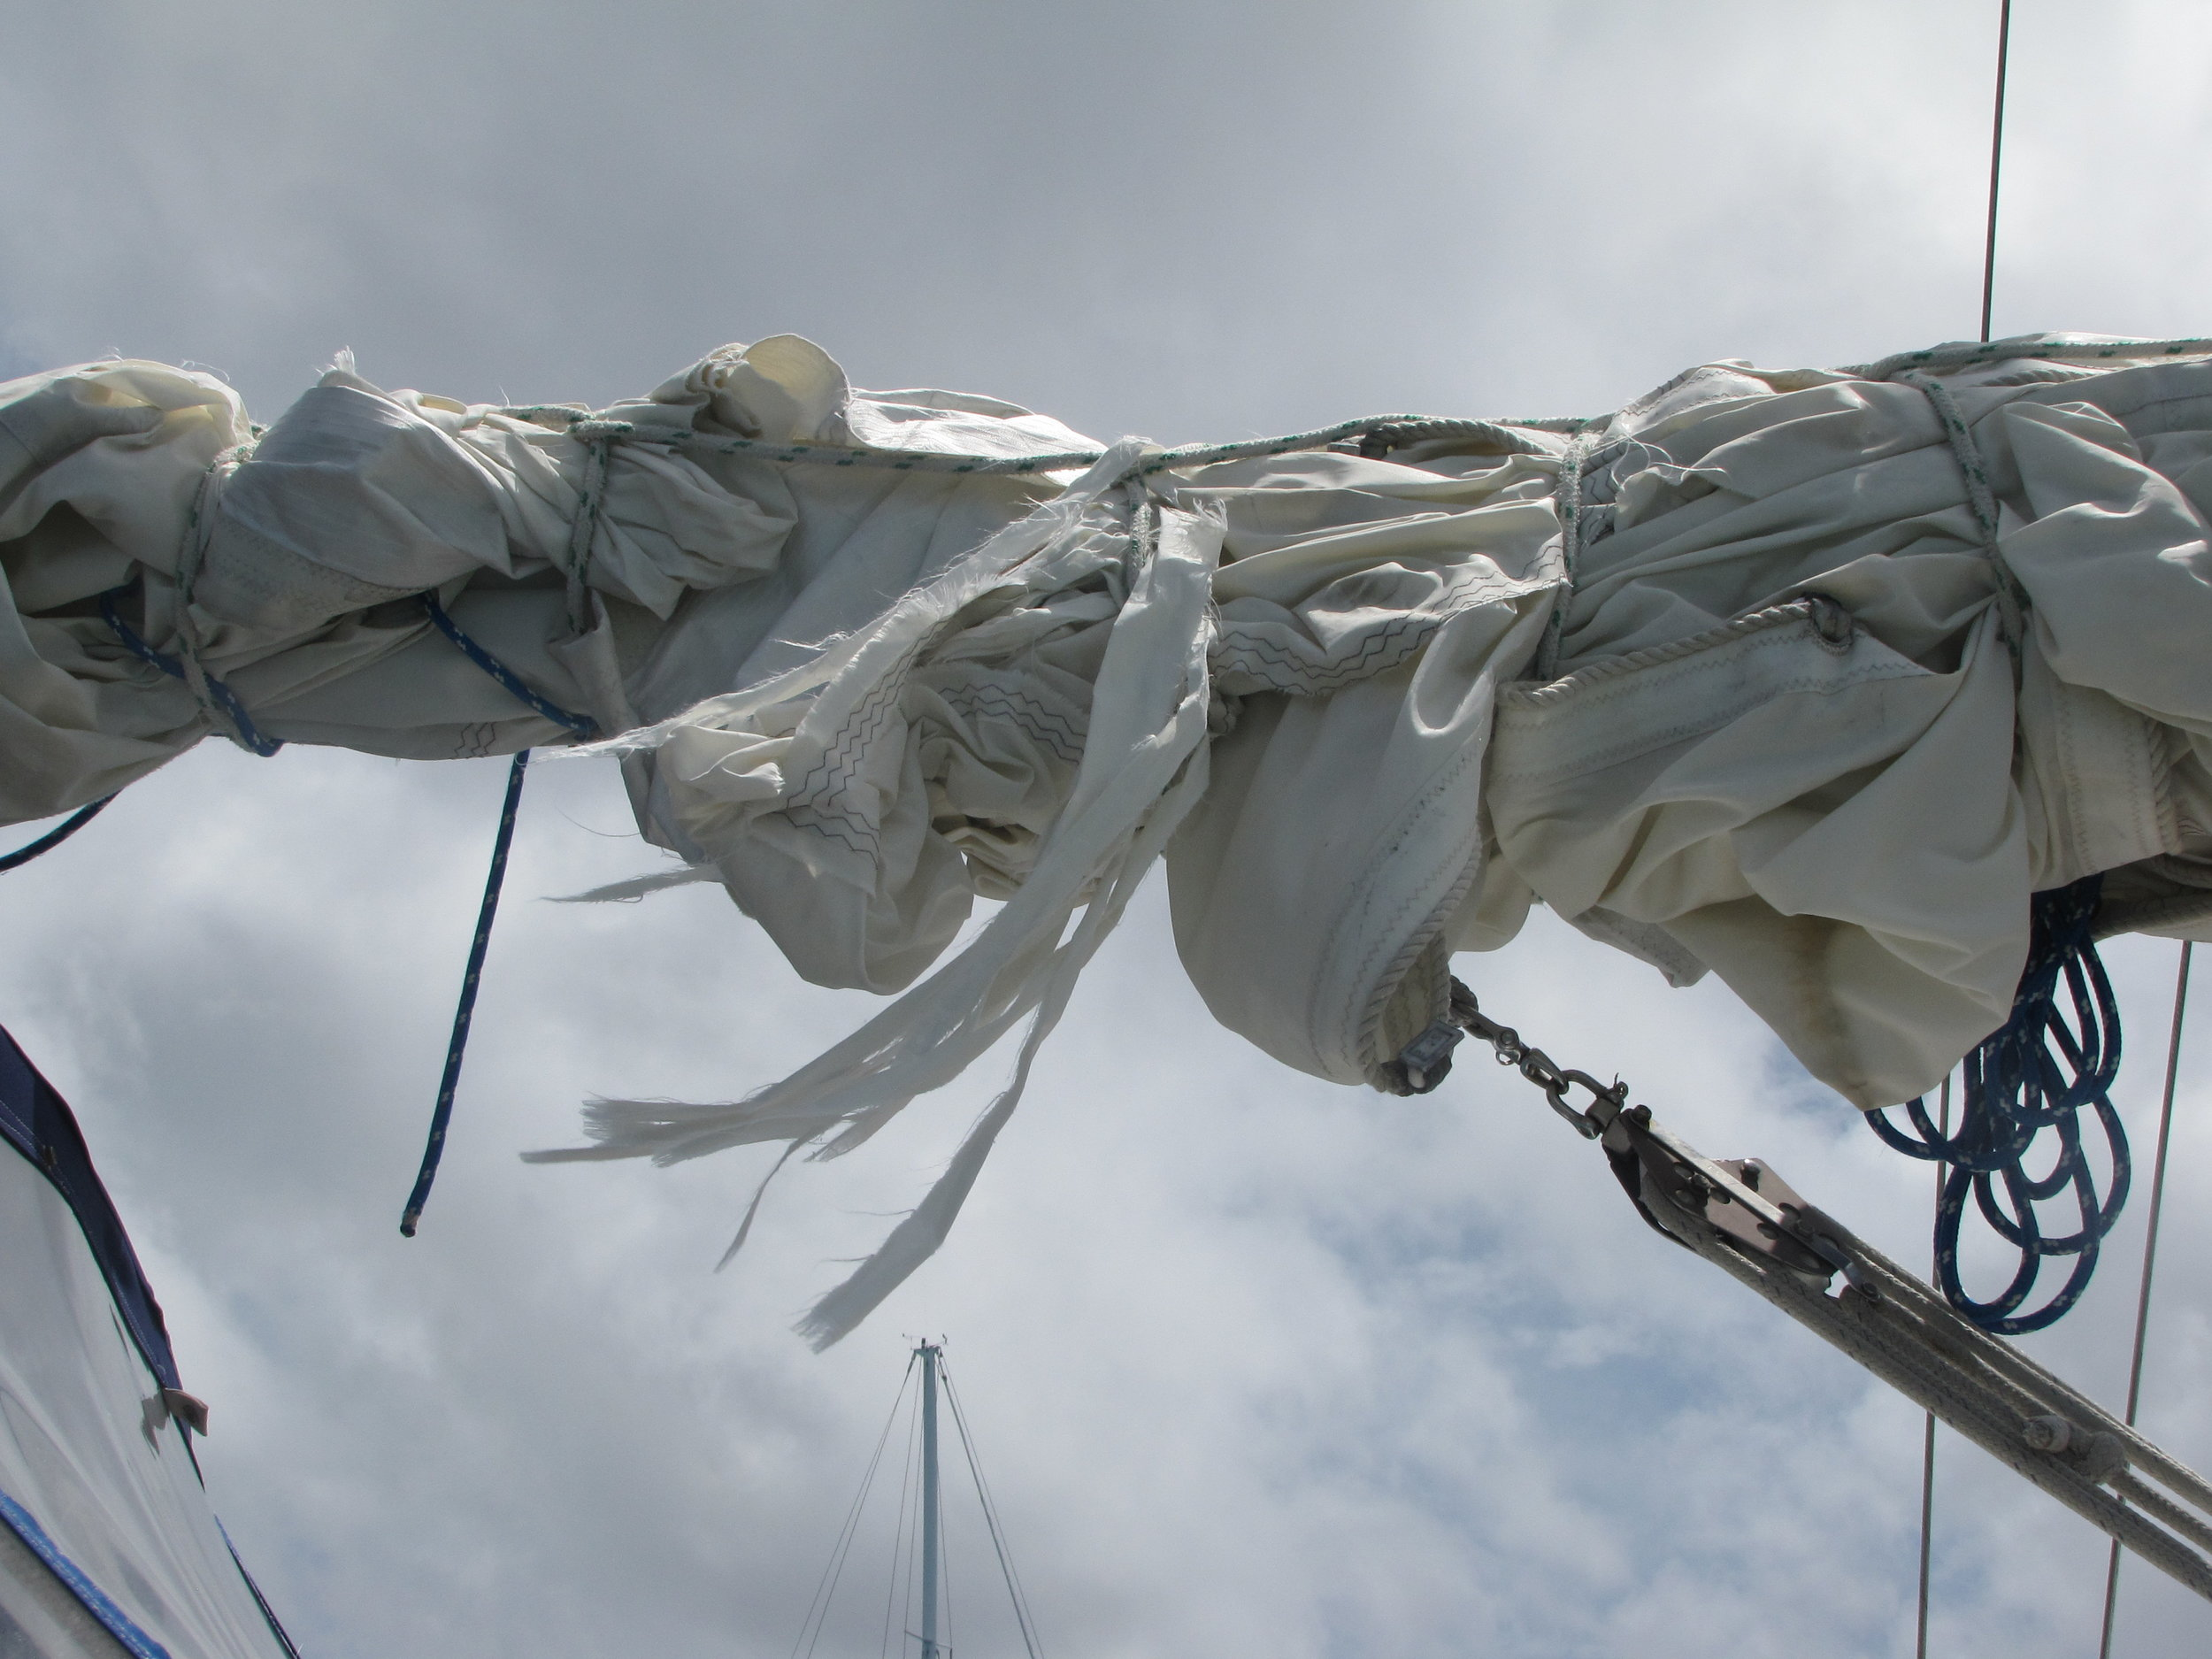 Our mainsail was in tatters!